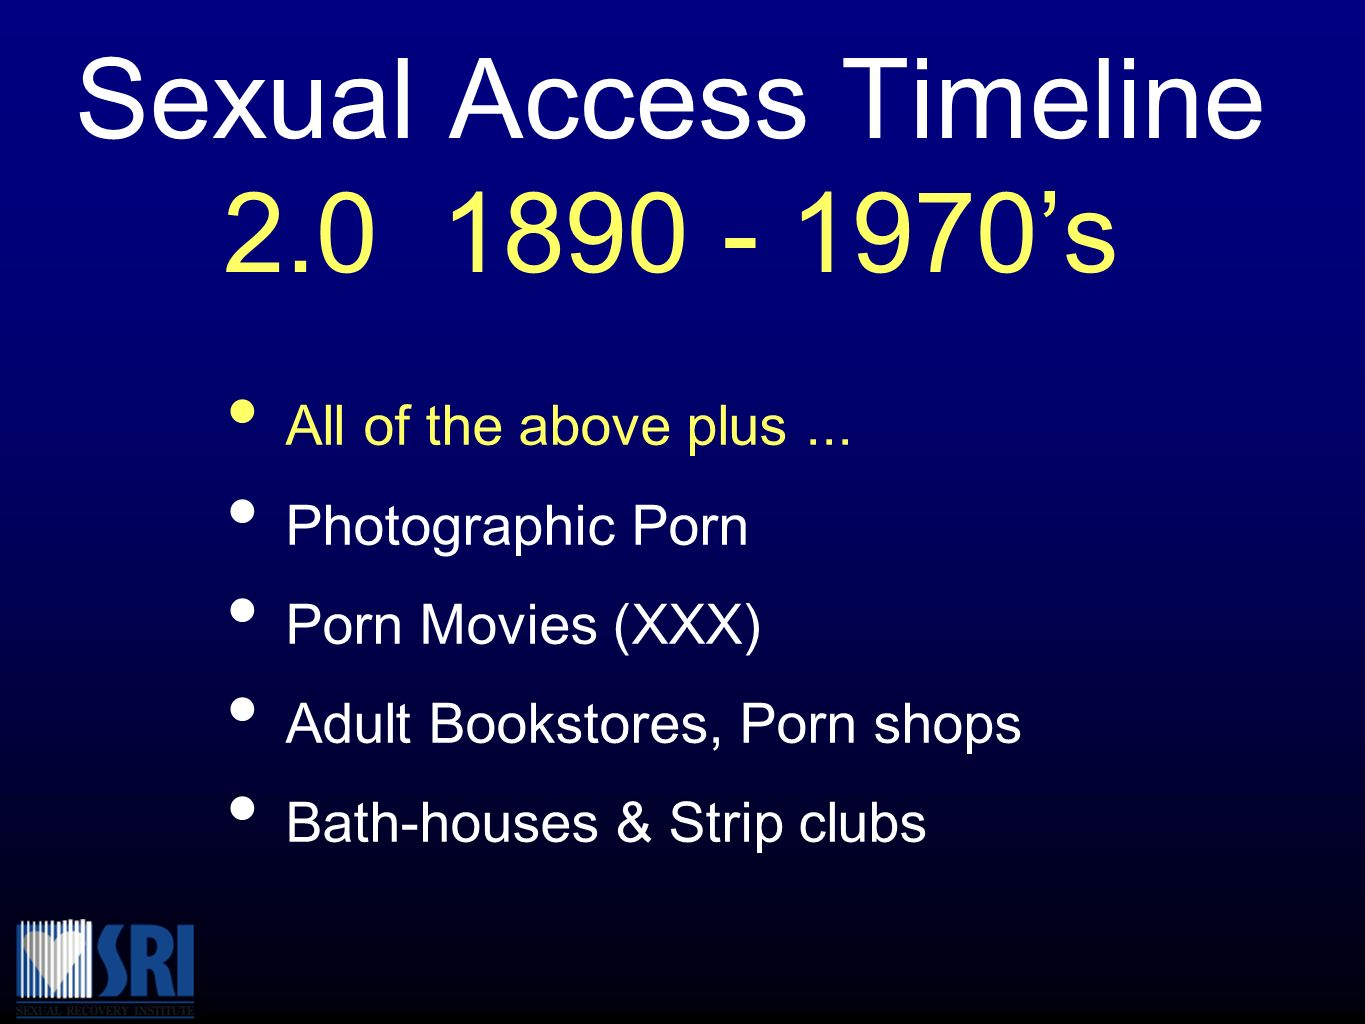 Sexual Access Timeline 2.0 1890 - 1970's